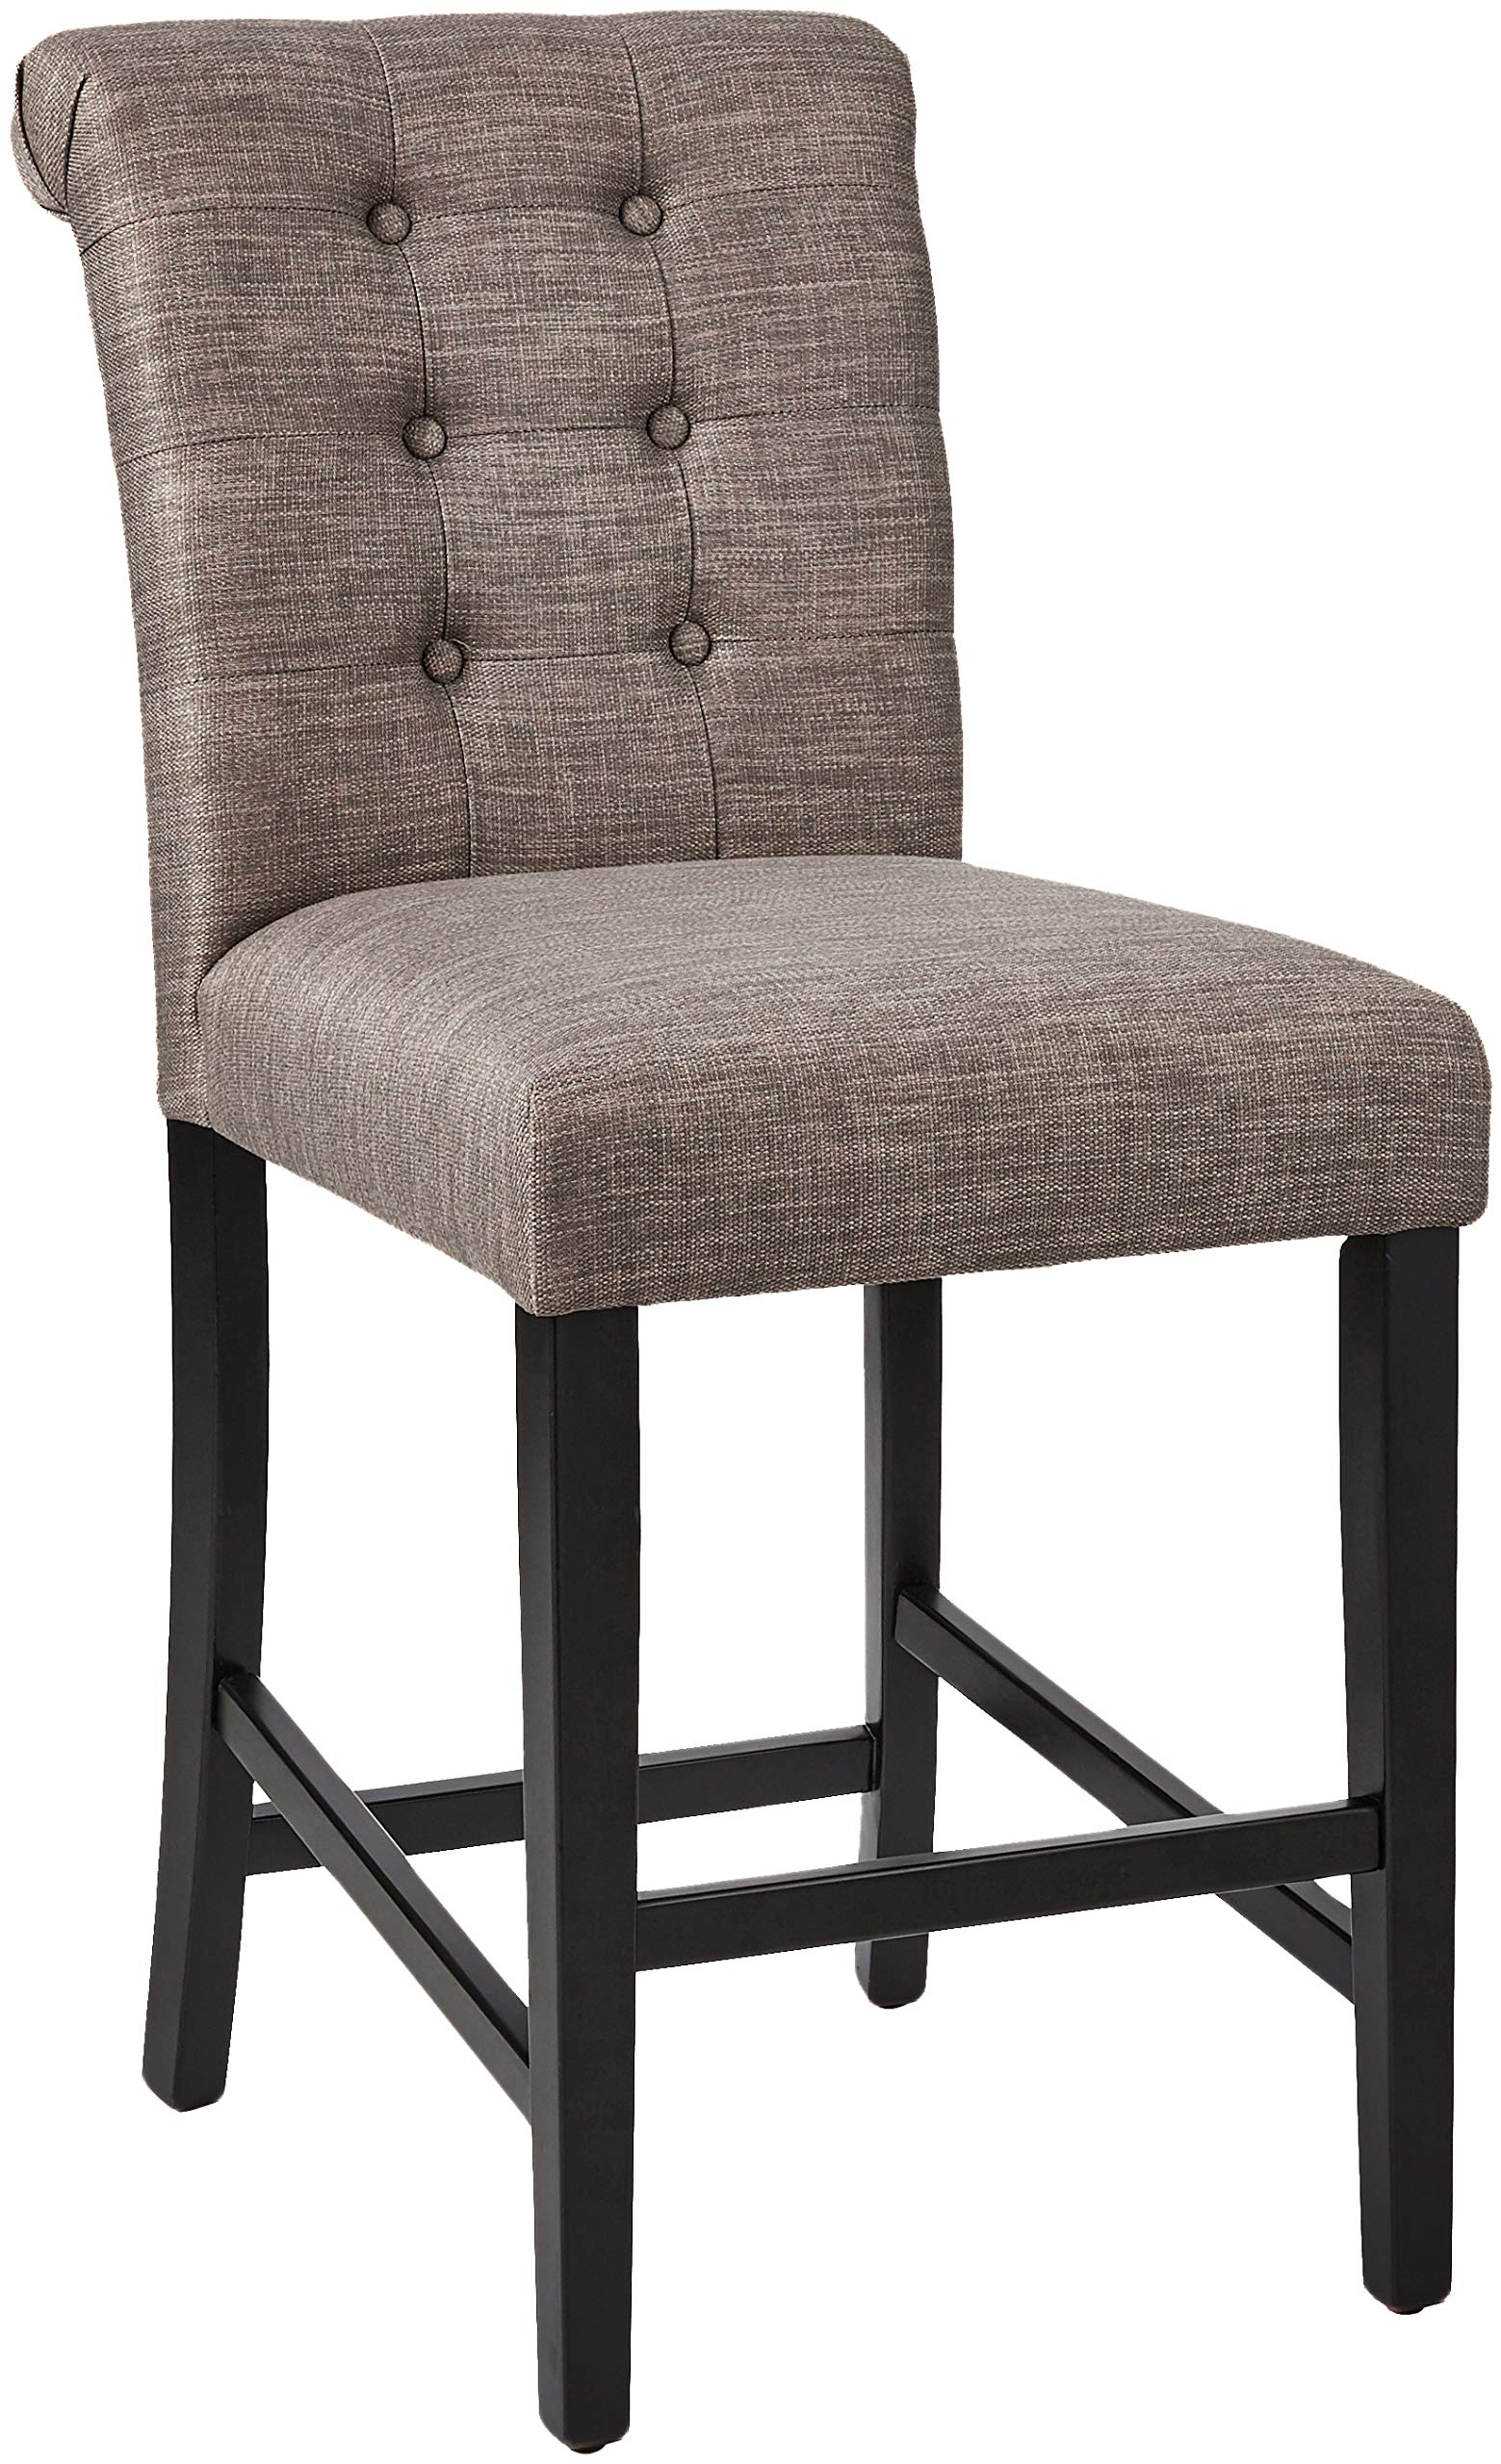 Ravenna Home Modern Counter Stool, Set of 2, 38.25''H, Grey by Ravenna Home